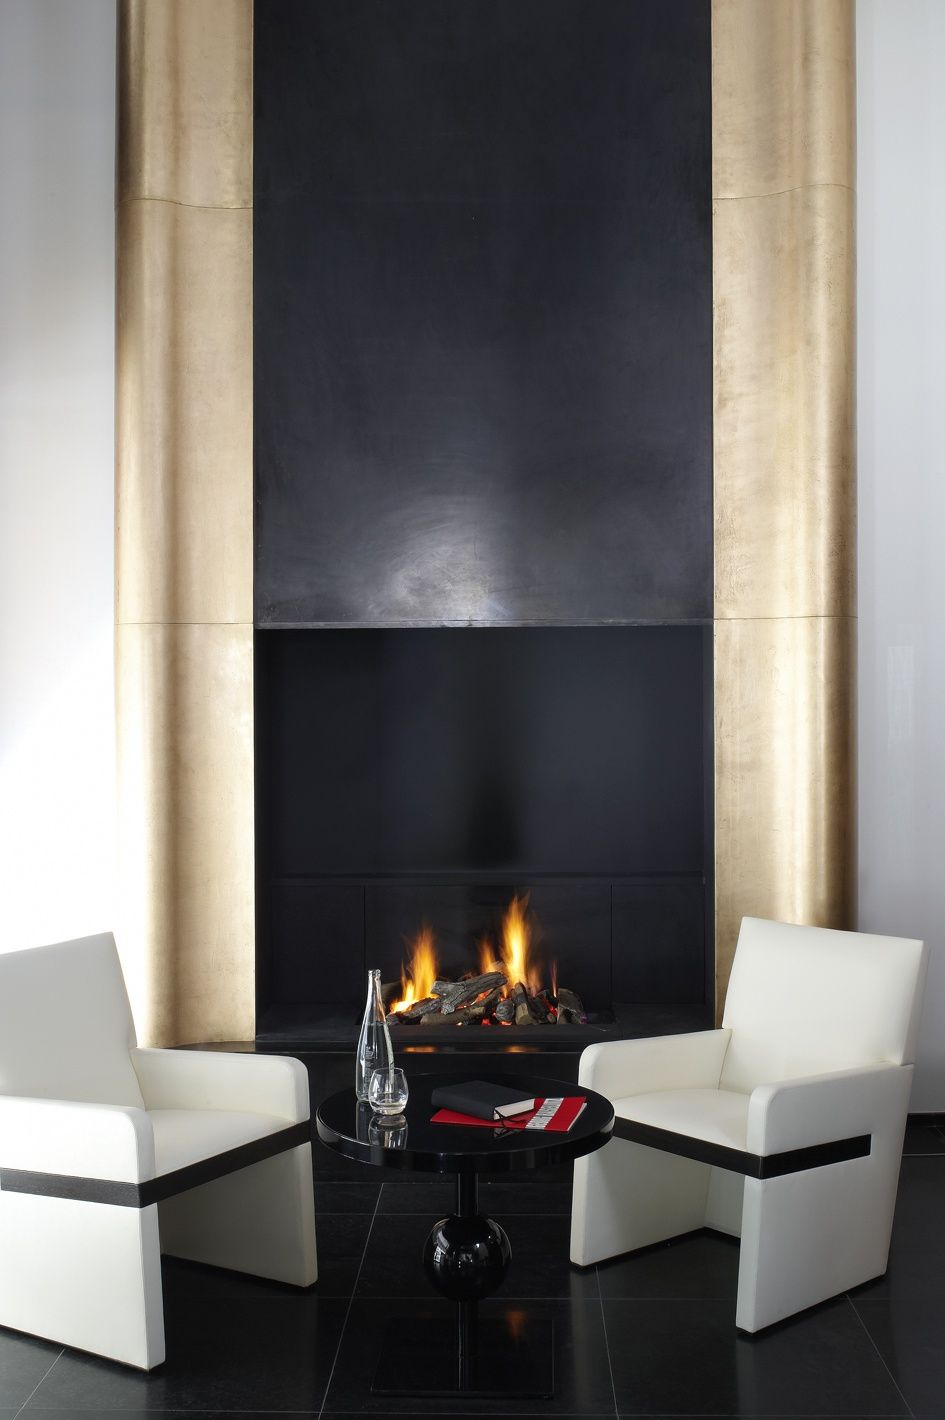 Contemporary Fireplaces For Luxury Living Rooms: Pin By Victoria Voytekunayte On Interior Design